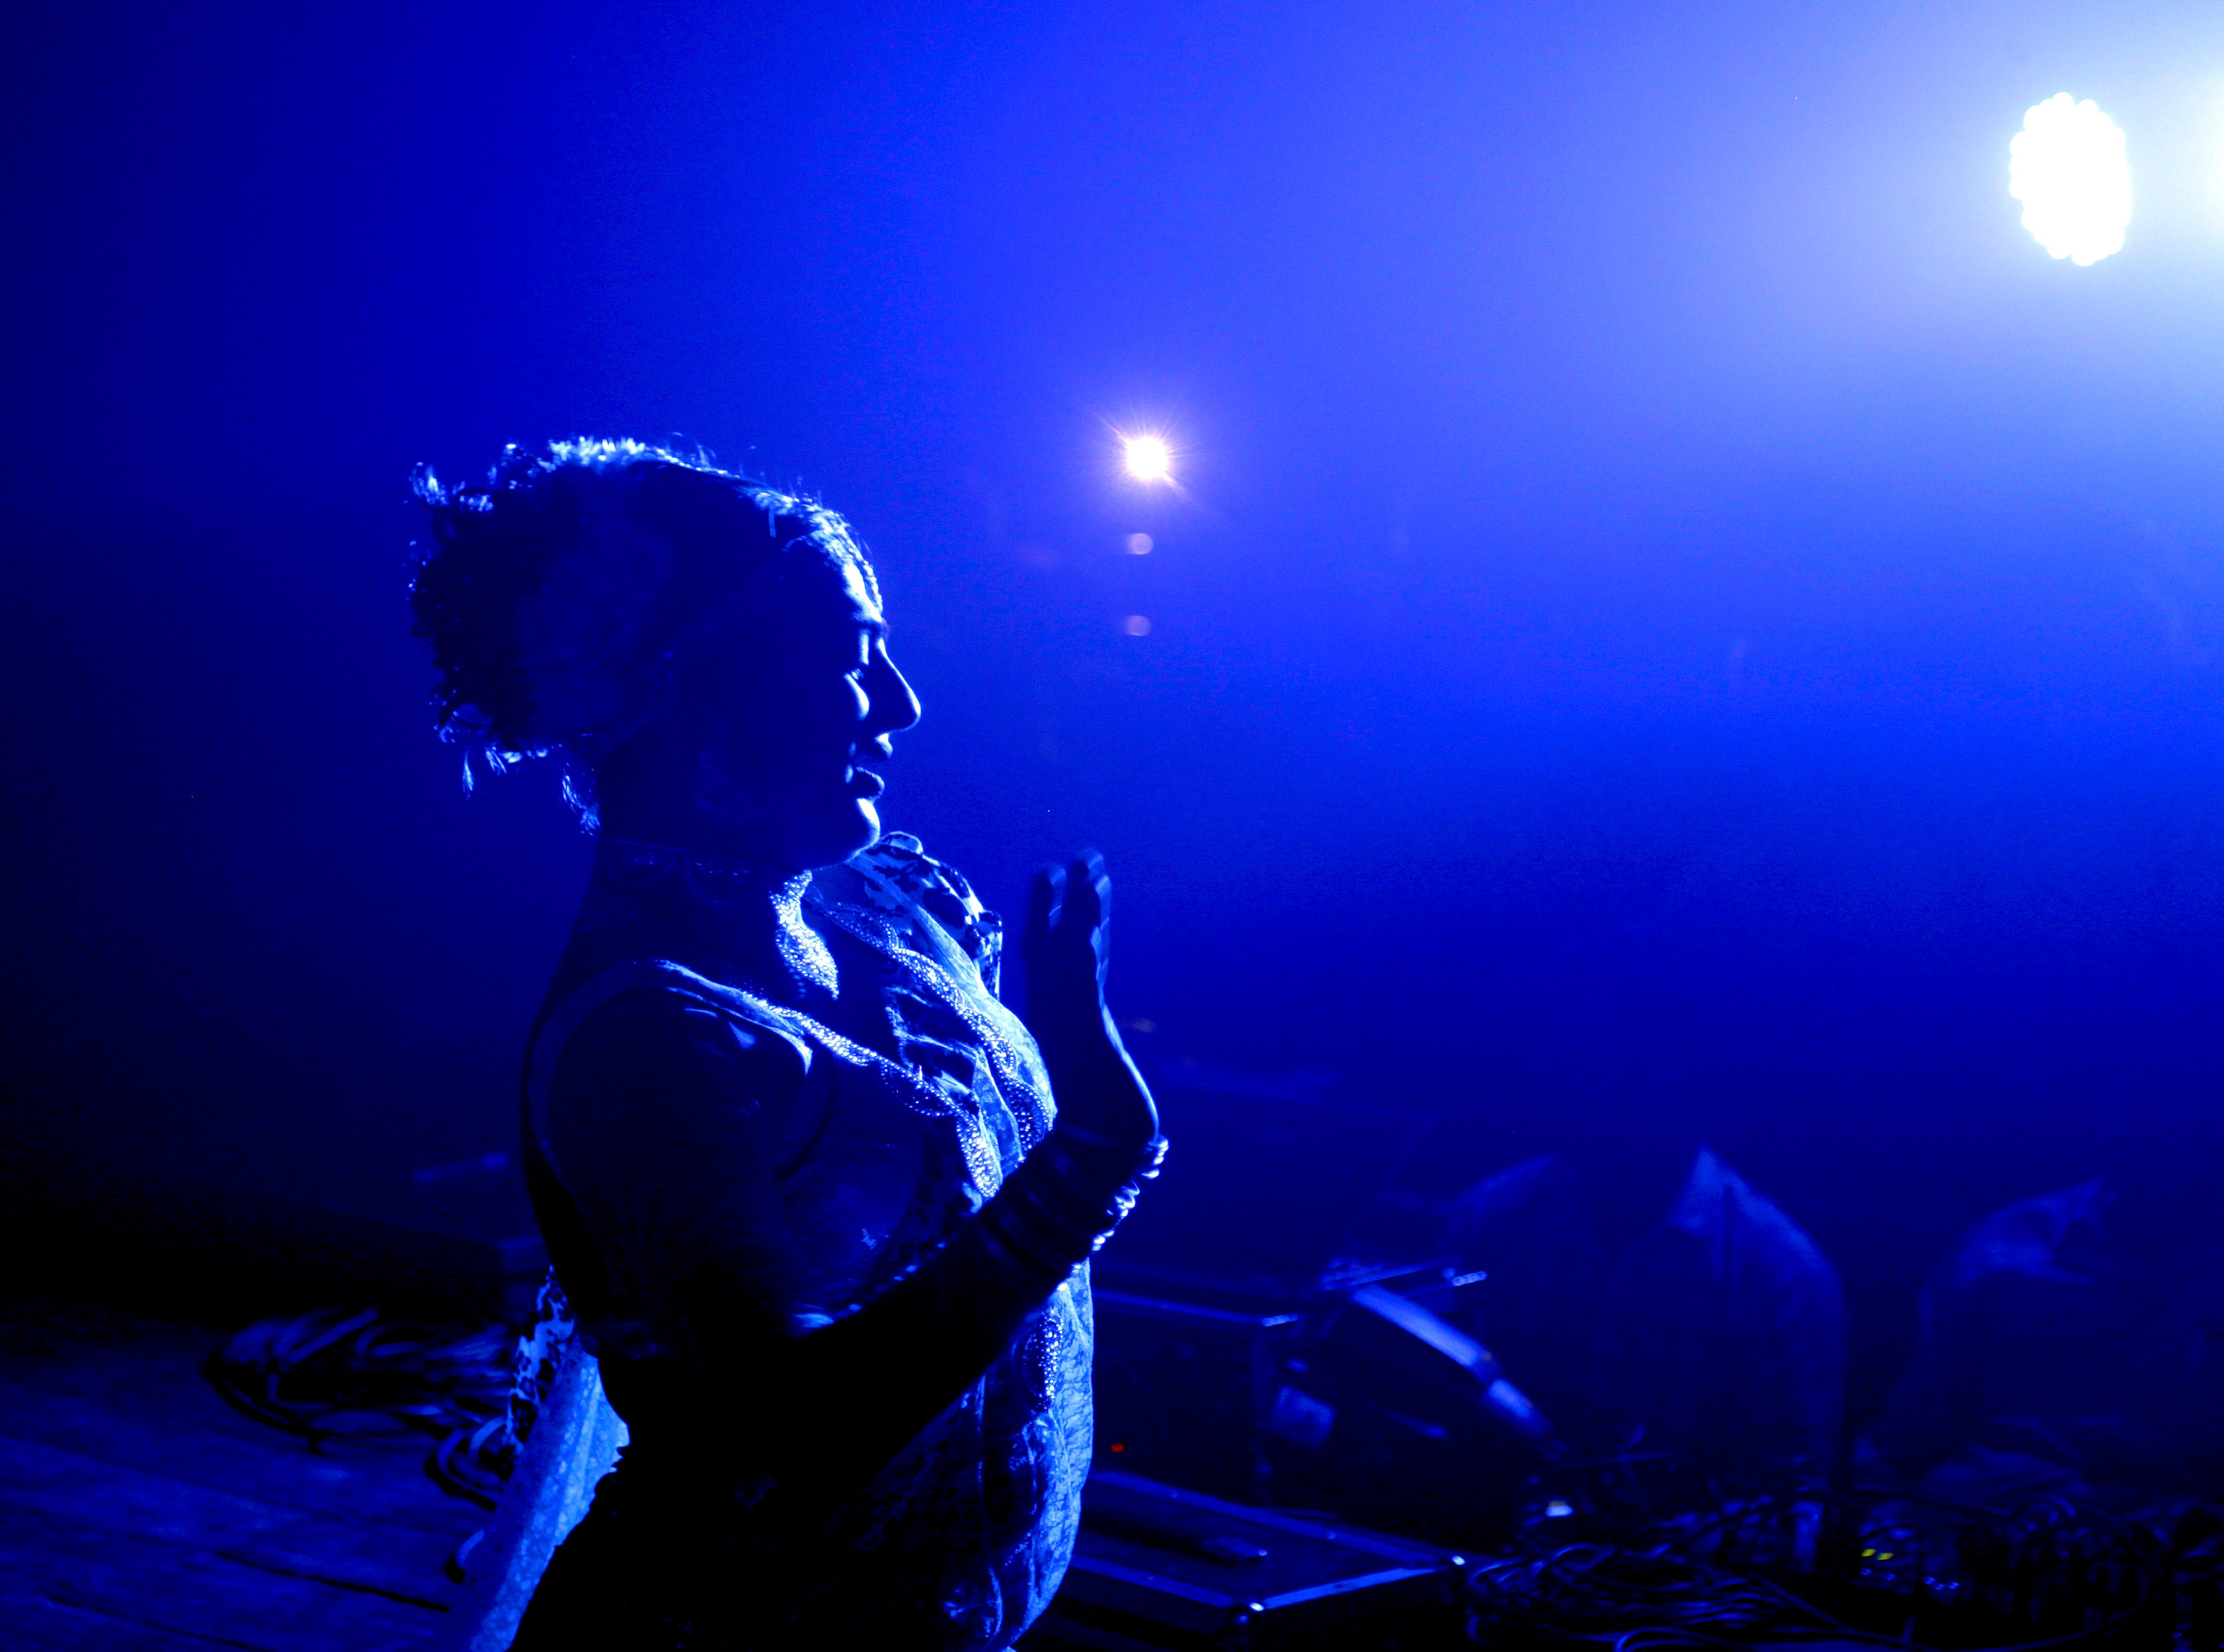 A supporter performs in a fundraiser for the transgender community and their rights in Mumbai, India, Thursday, Sept. 20, 2018. Over the past decade, the transgender community and homosexuals have gained a degree of acceptance in India, especially in big cities.